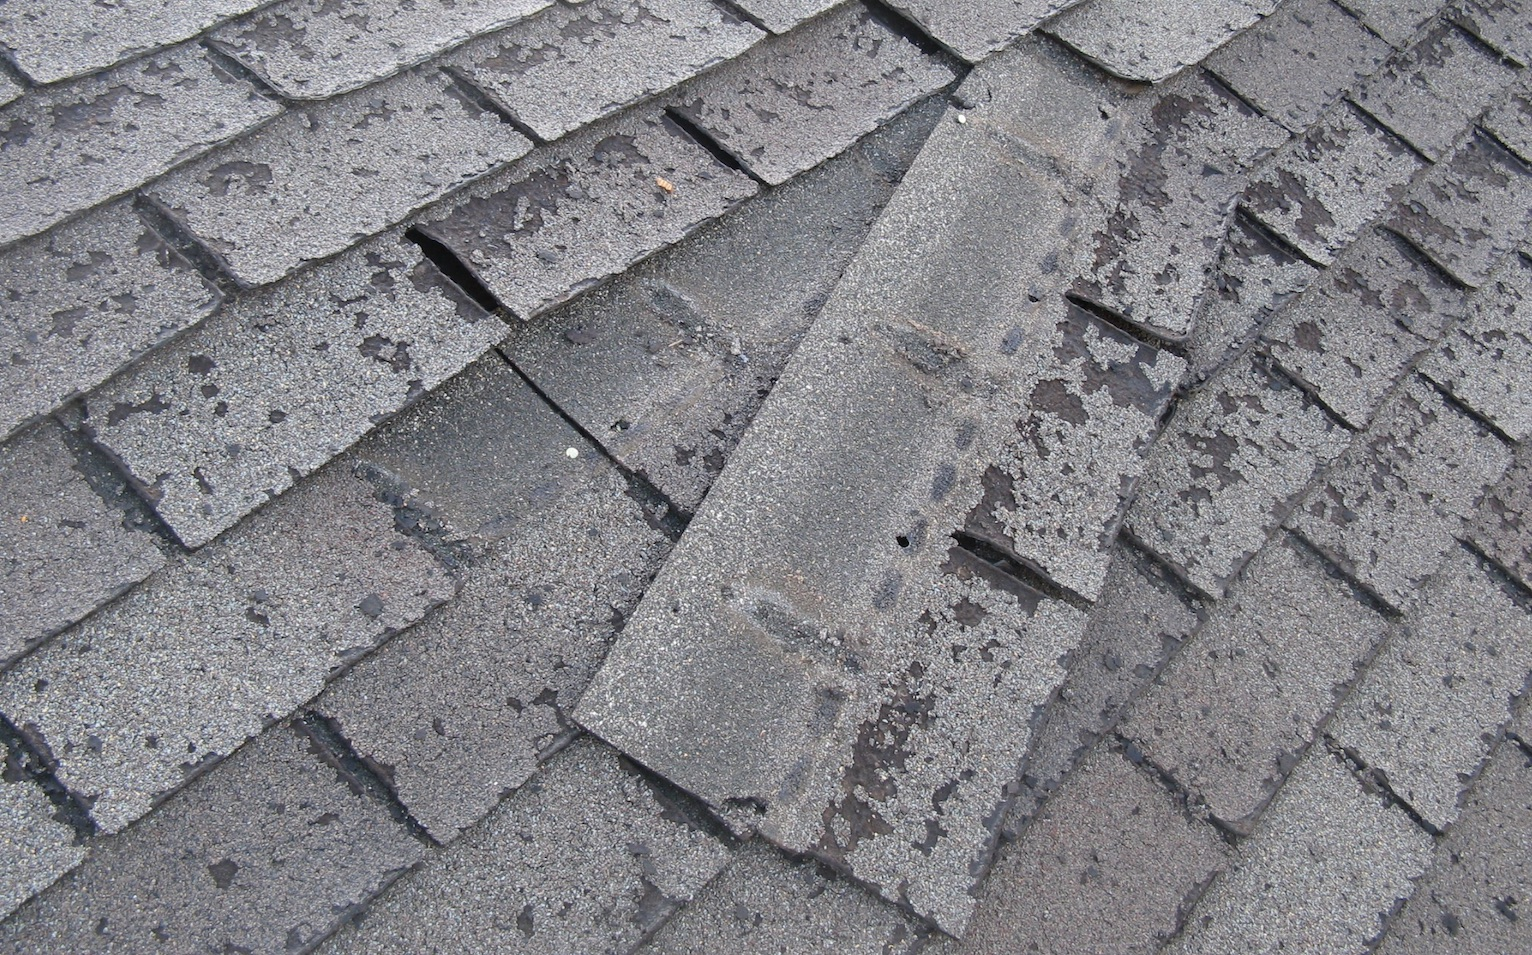 a shingle to wear out this rapidly in light of the fact that shingles years ago lasted three times longer copyright tim carter all rights reserved